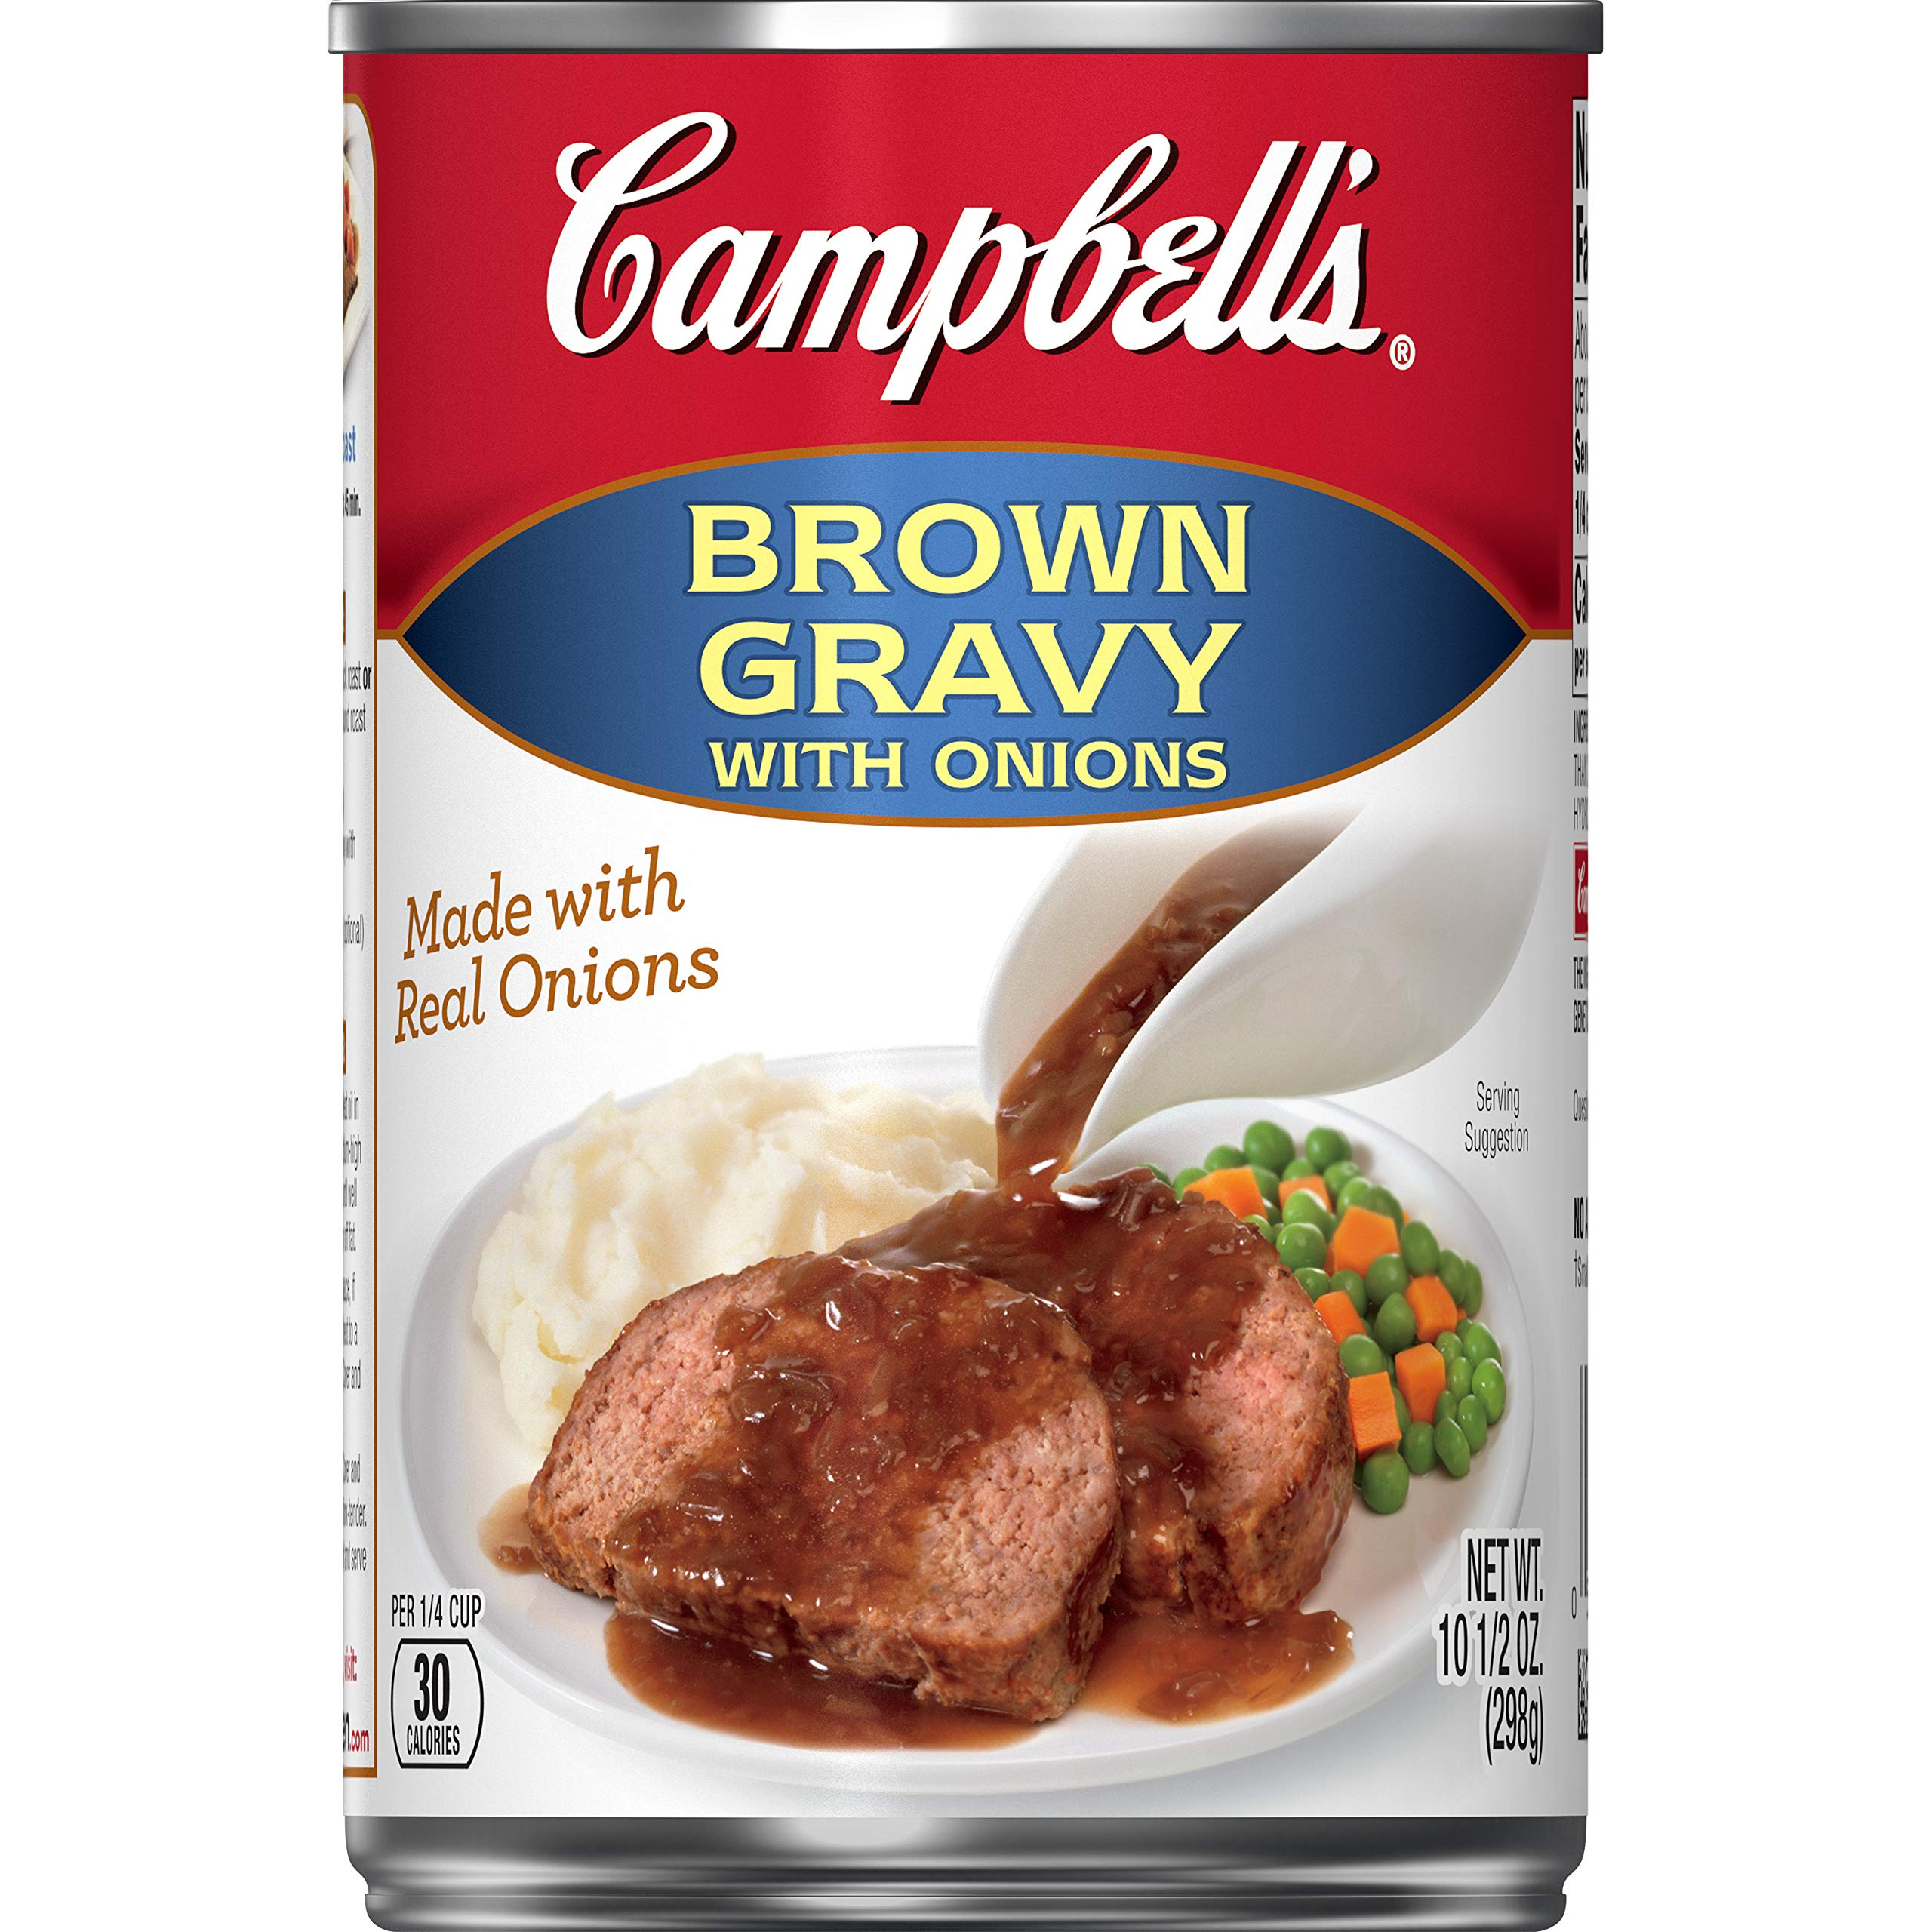 Campbell's Gravy, Brown Gravy with Onions, 10.5 oz. Can